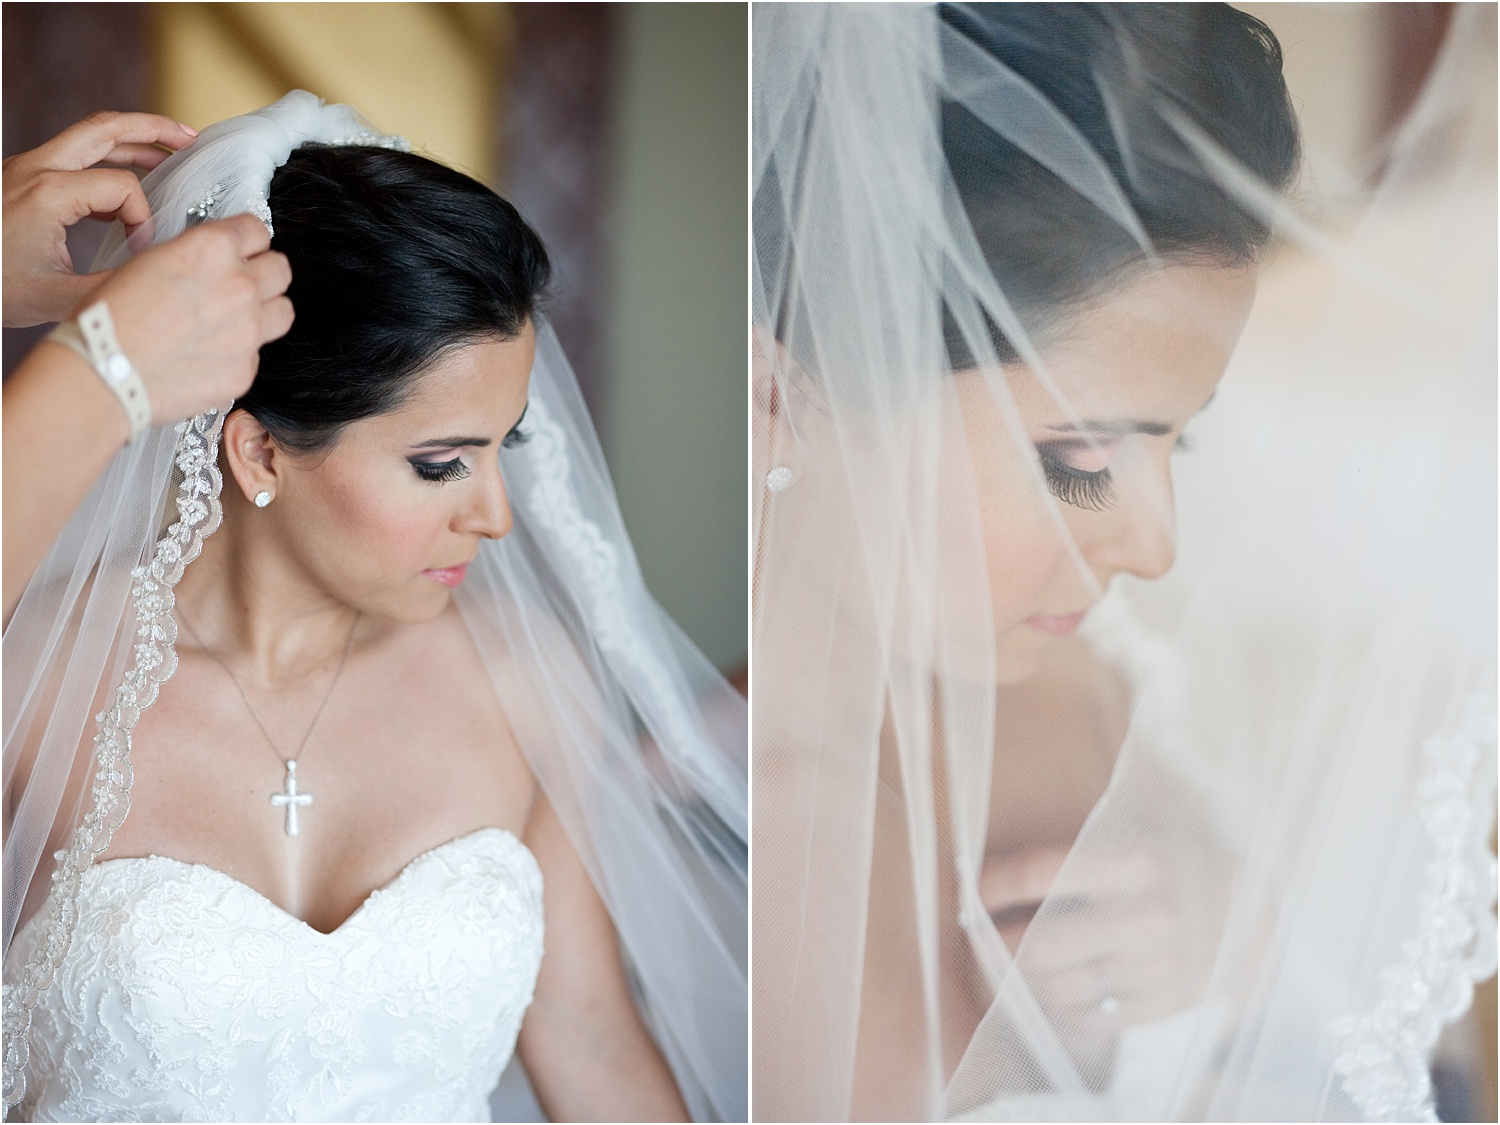 bride details - Tips for Better Bridal Portraits